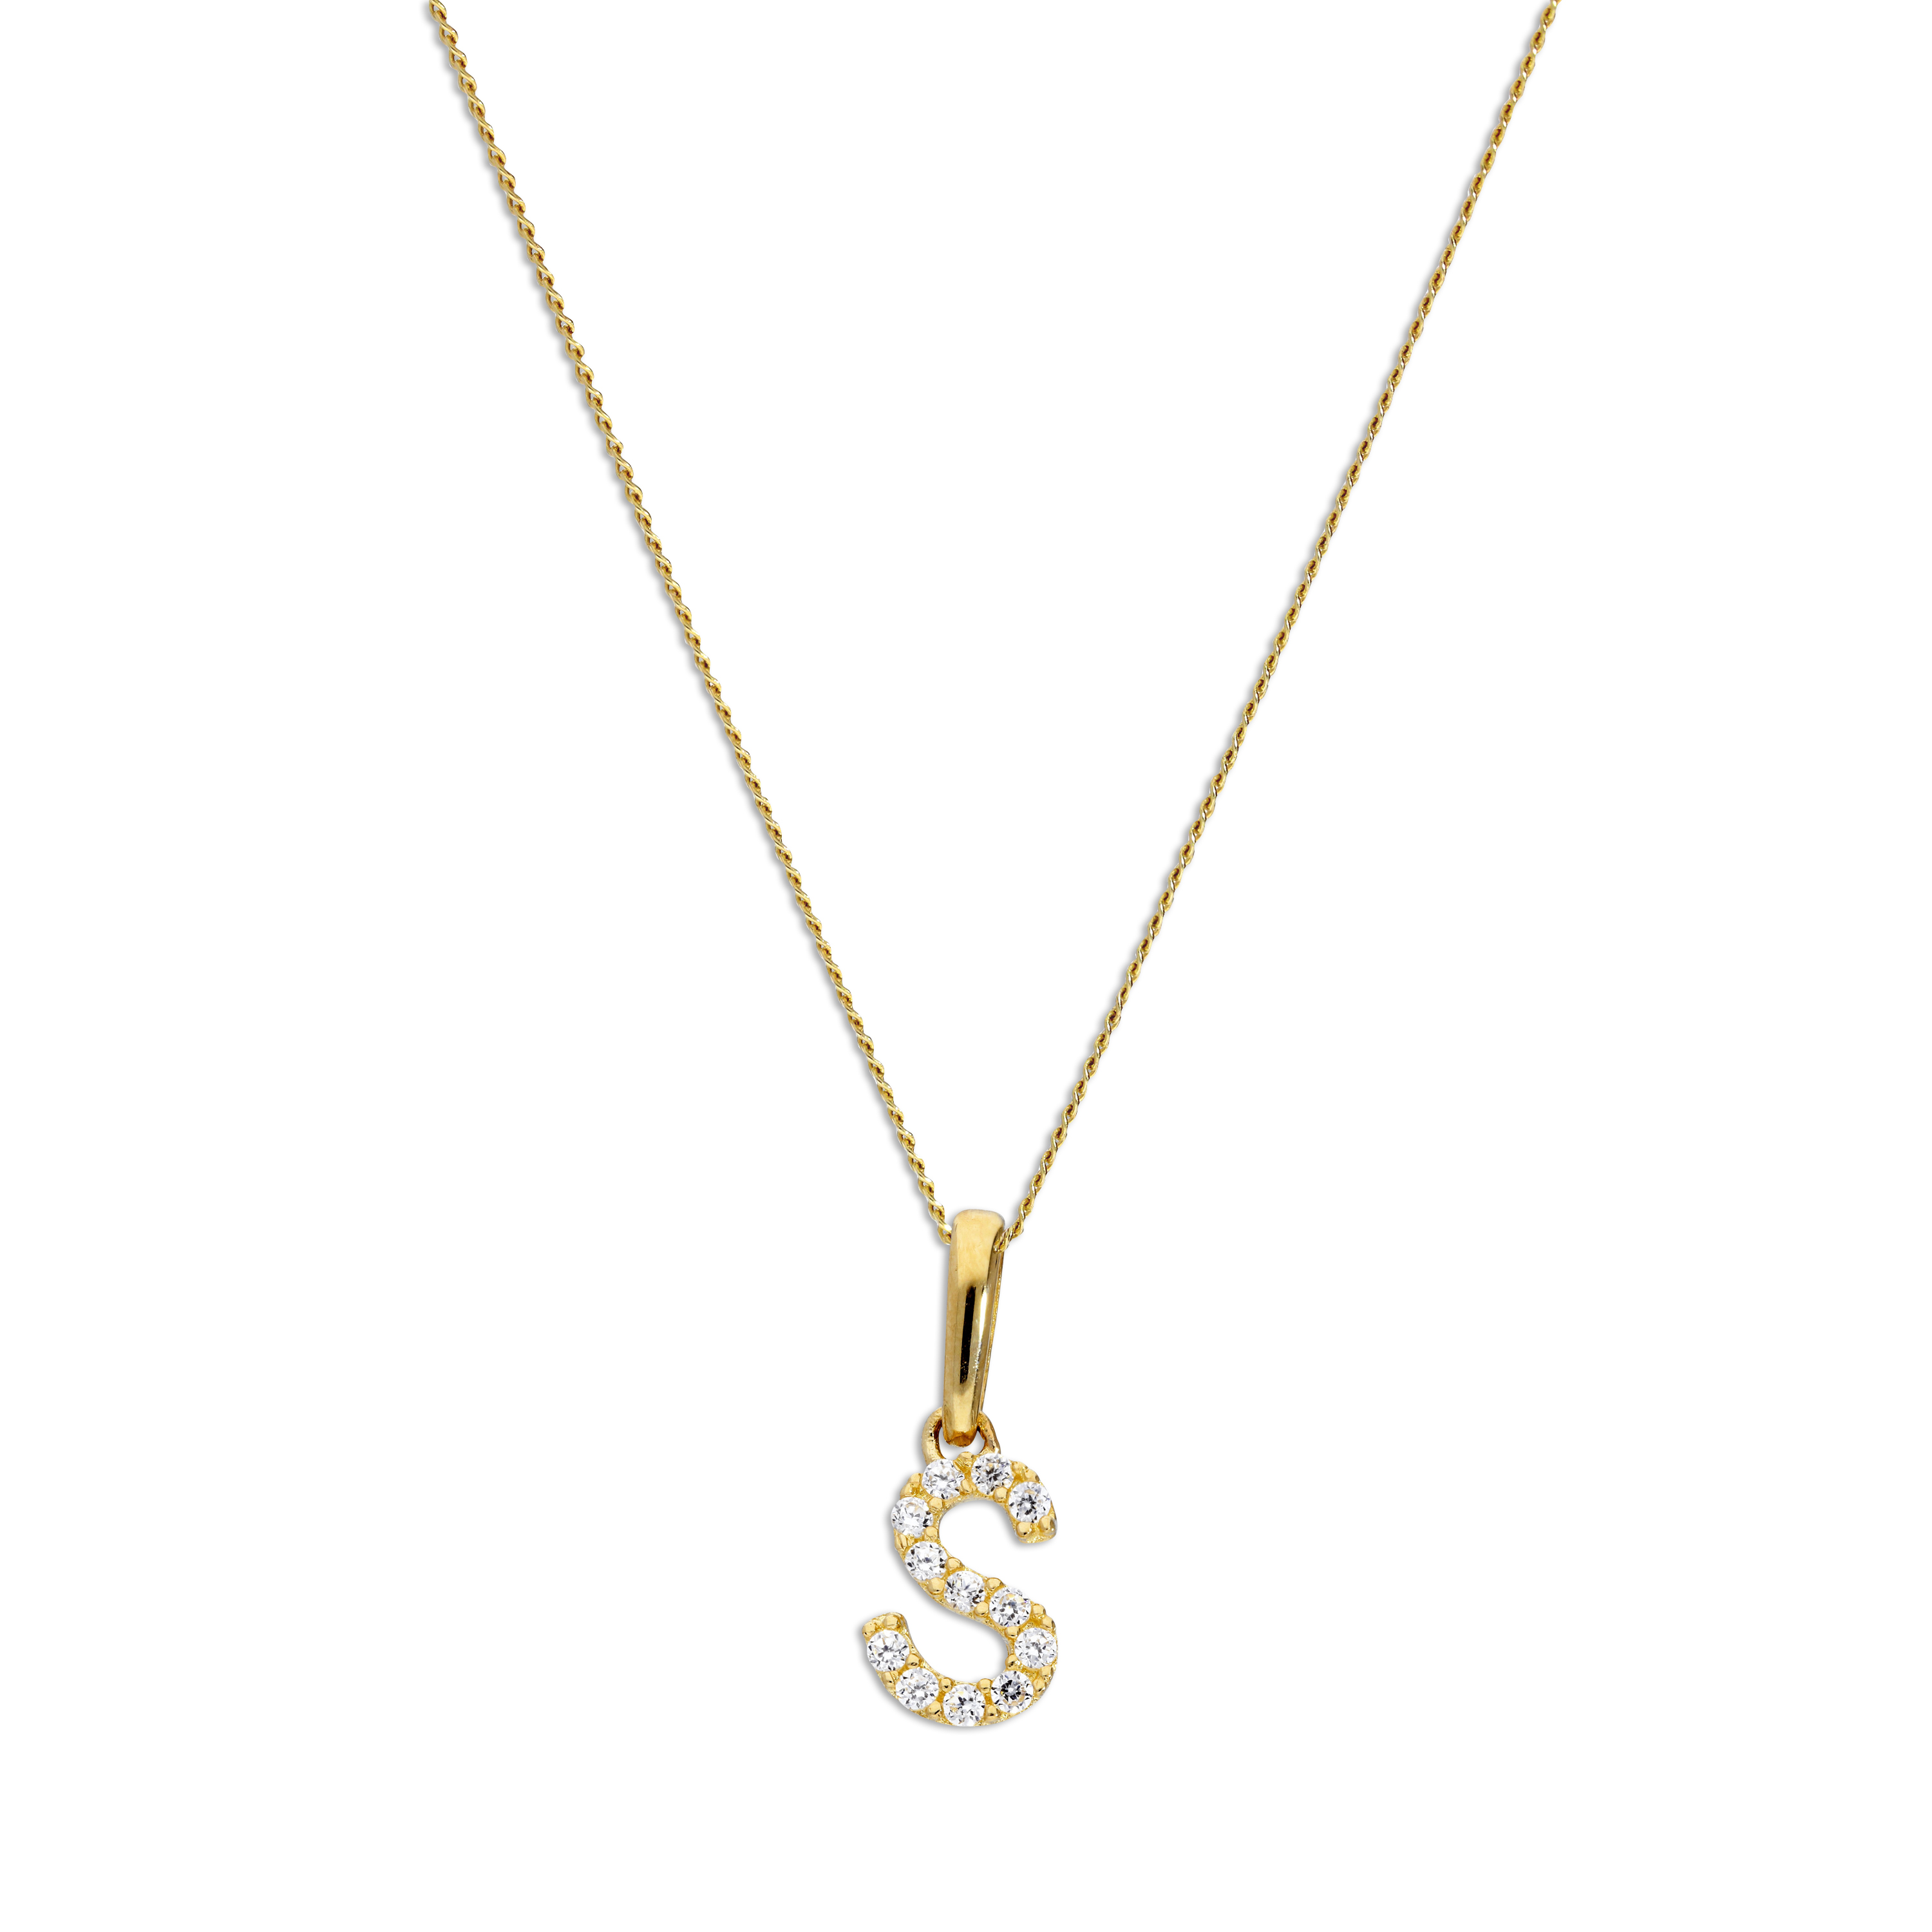 An image of 9ct Gold Clear CZ Crystal Script Alphabet Letter S Necklace 18 Inches Chain